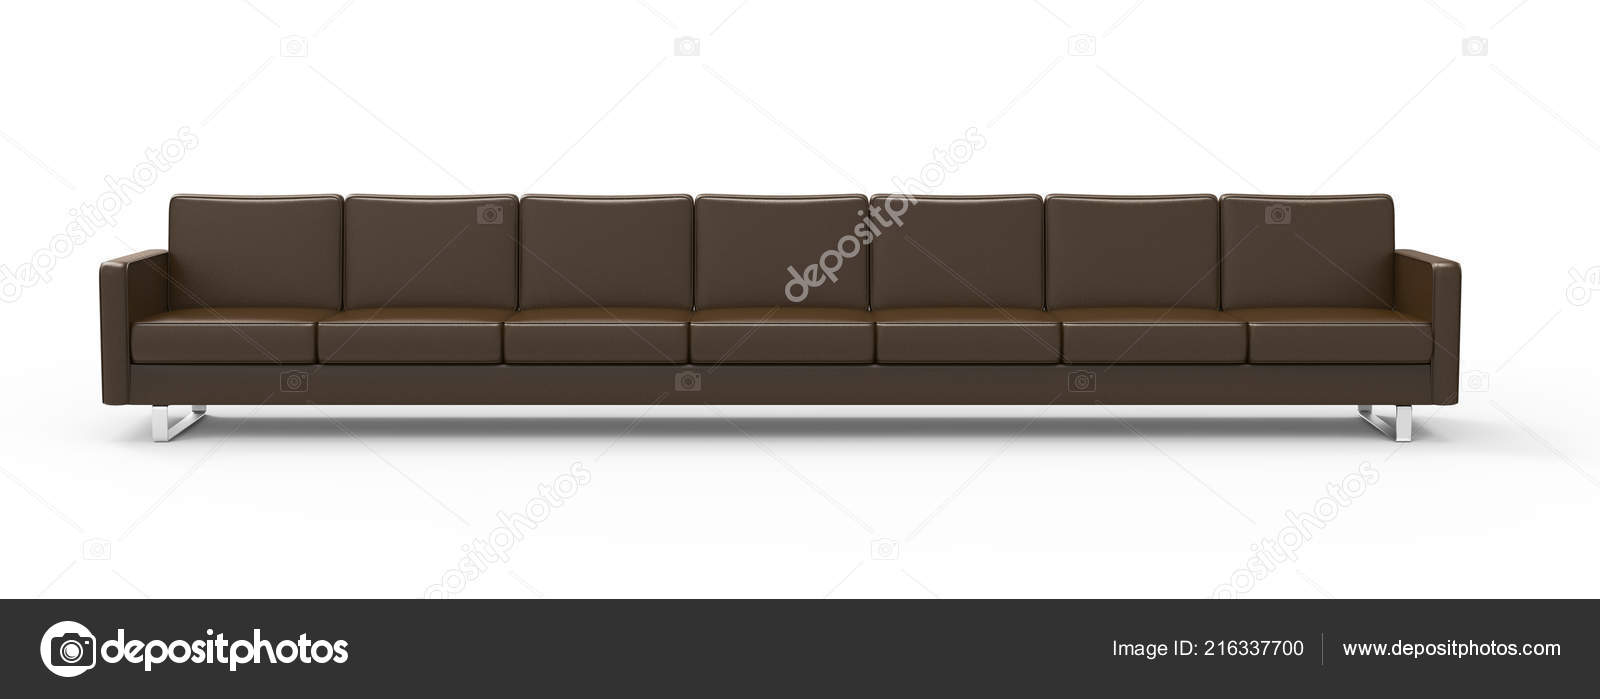 Astounding Extremely Long Brown Leather Sofa Isolated White Background Pdpeps Interior Chair Design Pdpepsorg